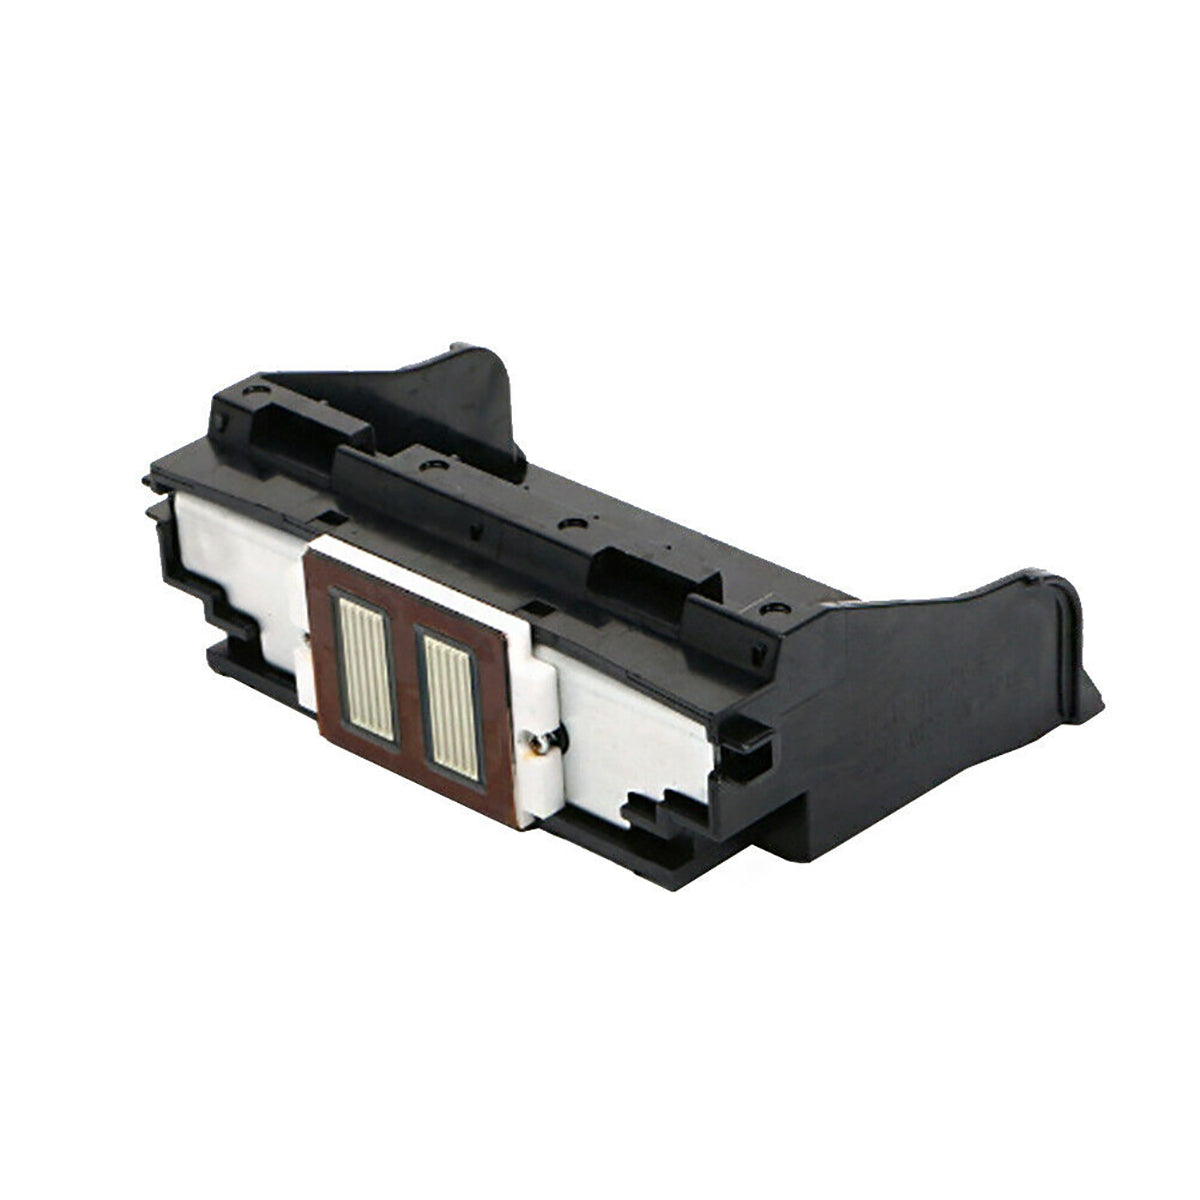 Plastic QY6-0076 Print Head for Canon iP8500/9910 Pro9000/i9900 MarkII Printer